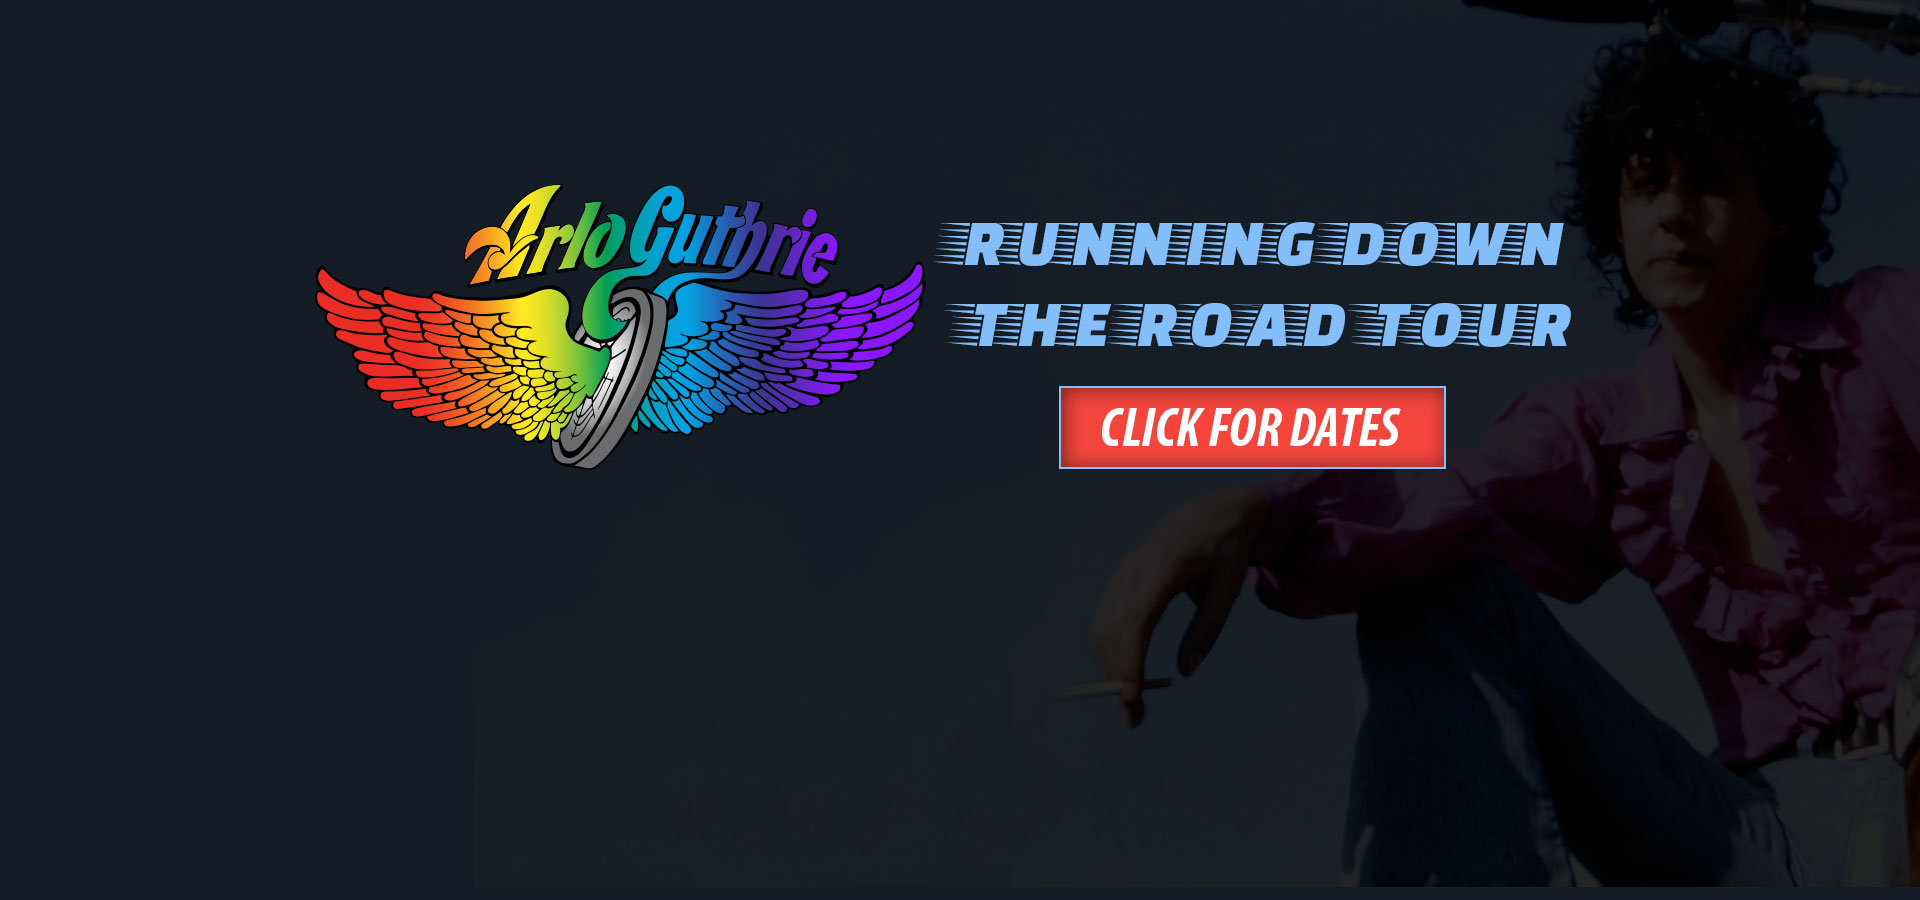 Running Down The Road Tour